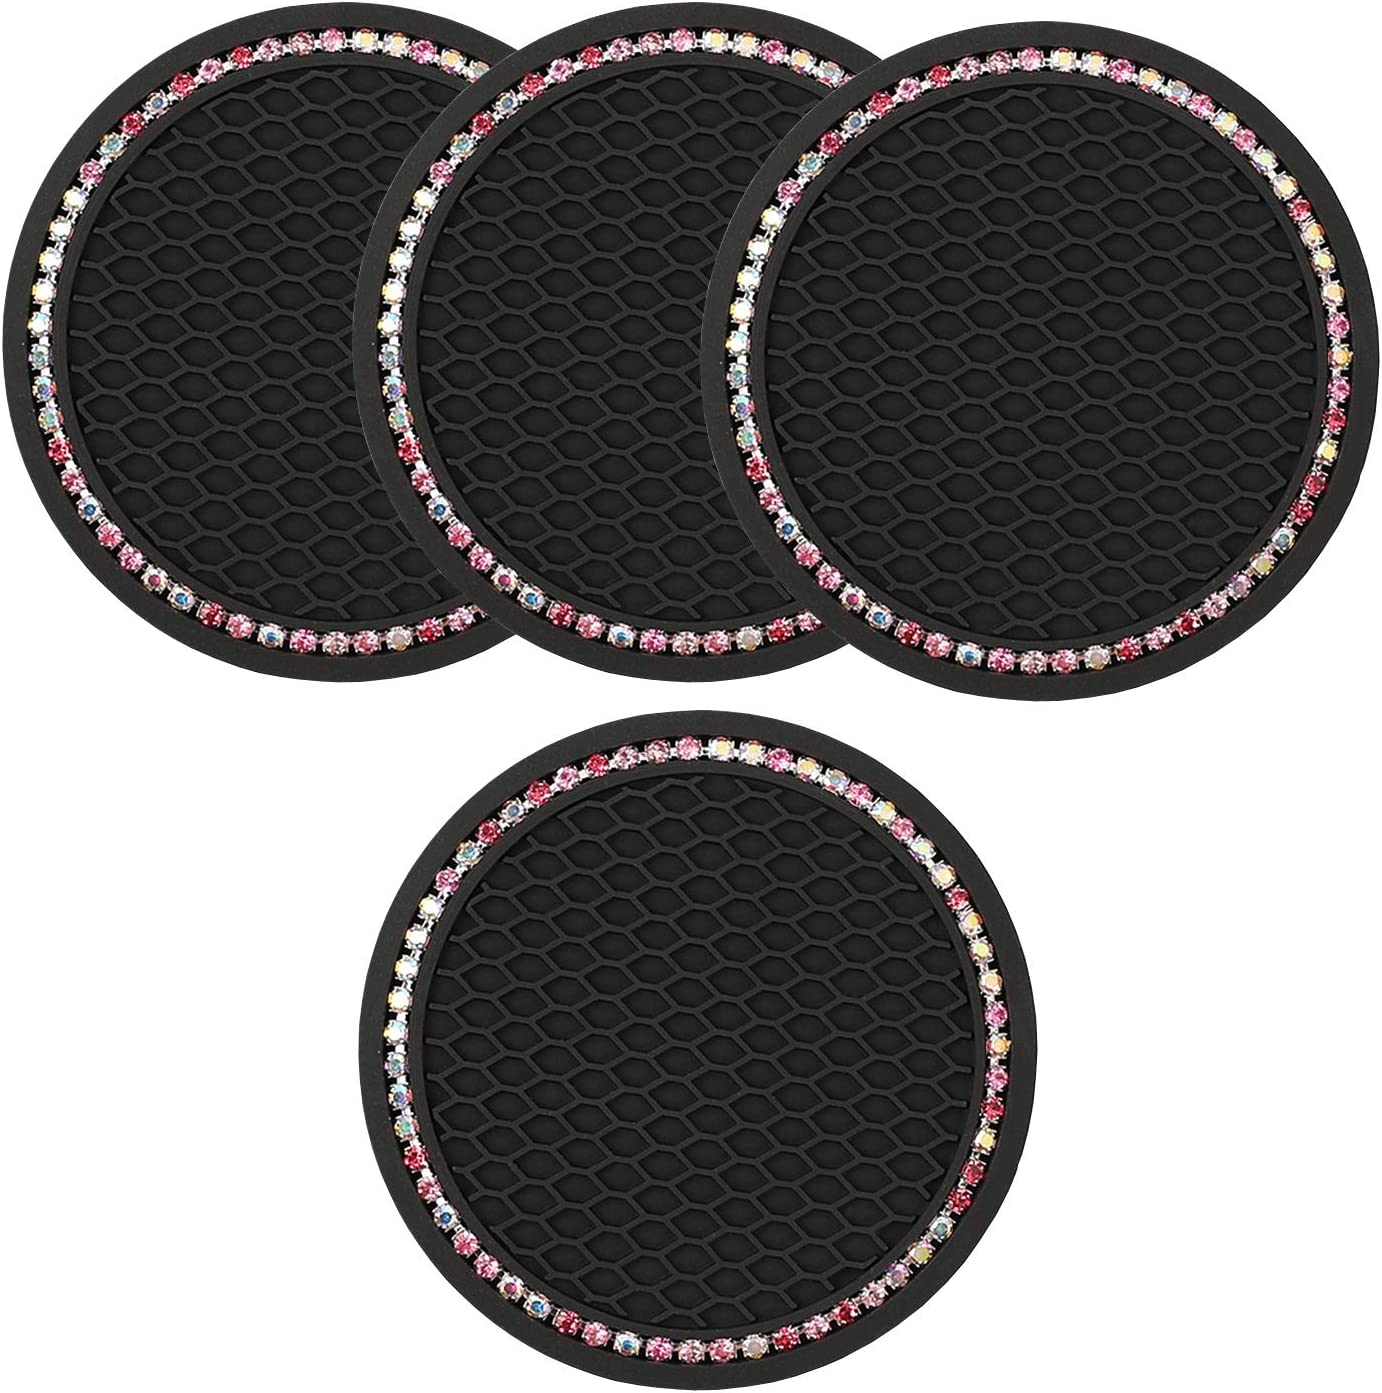 Cup Holder Coasters Limited time cheap sale for Car Bling 4 Bargain sale Pack Diamond Sparkle Ac